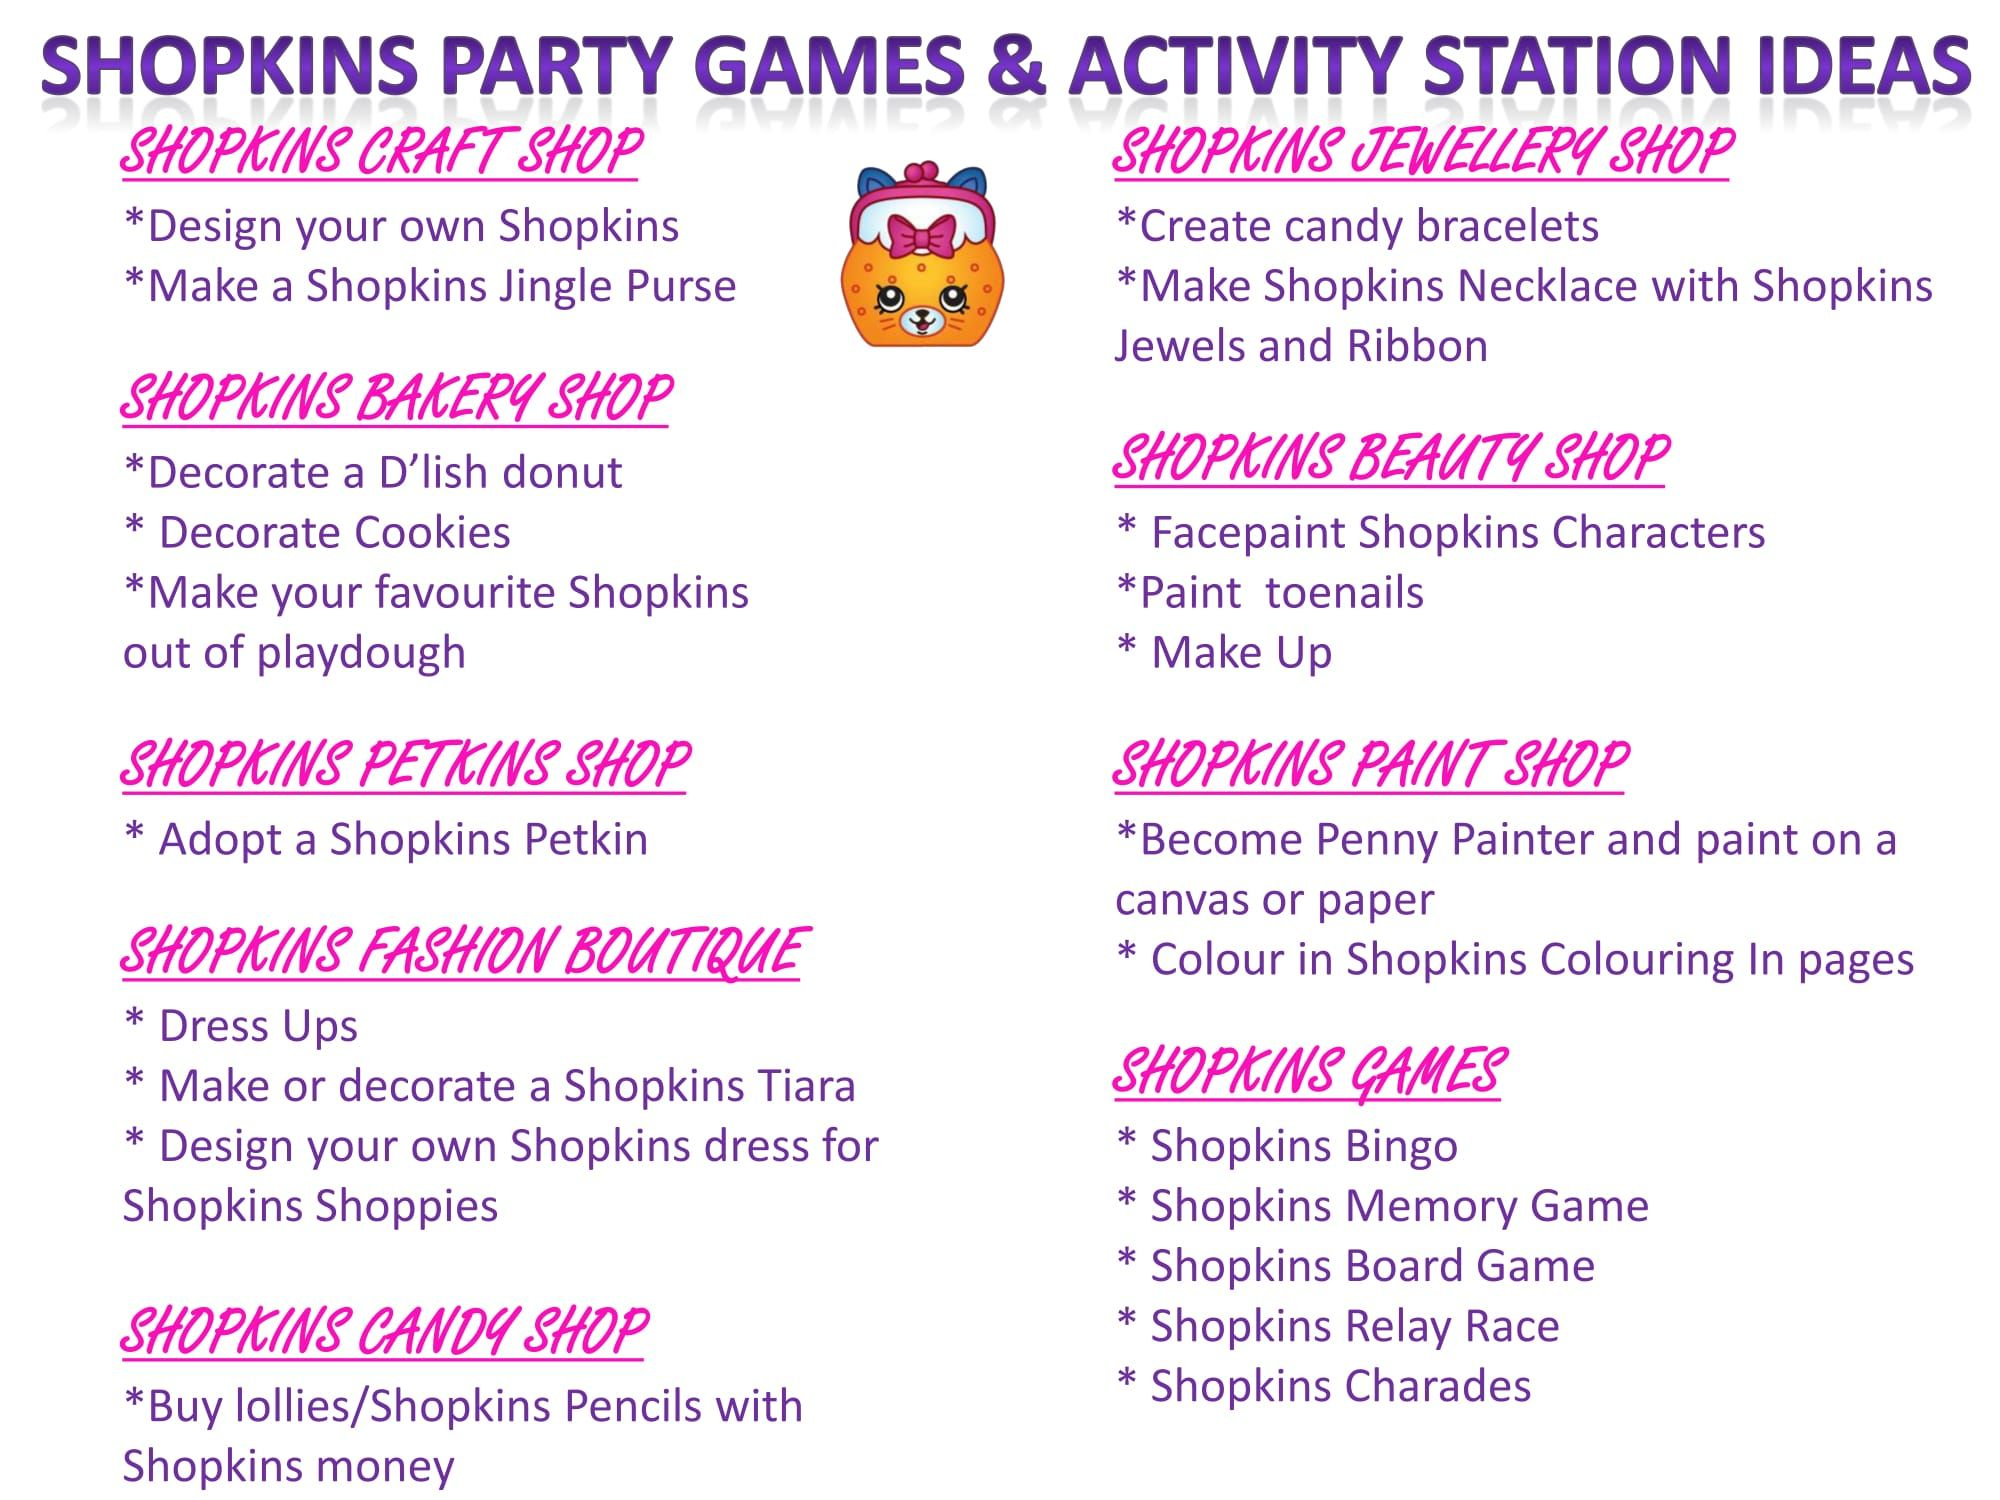 Shopkins Party Games & Activity Station Ideas Free Printable at